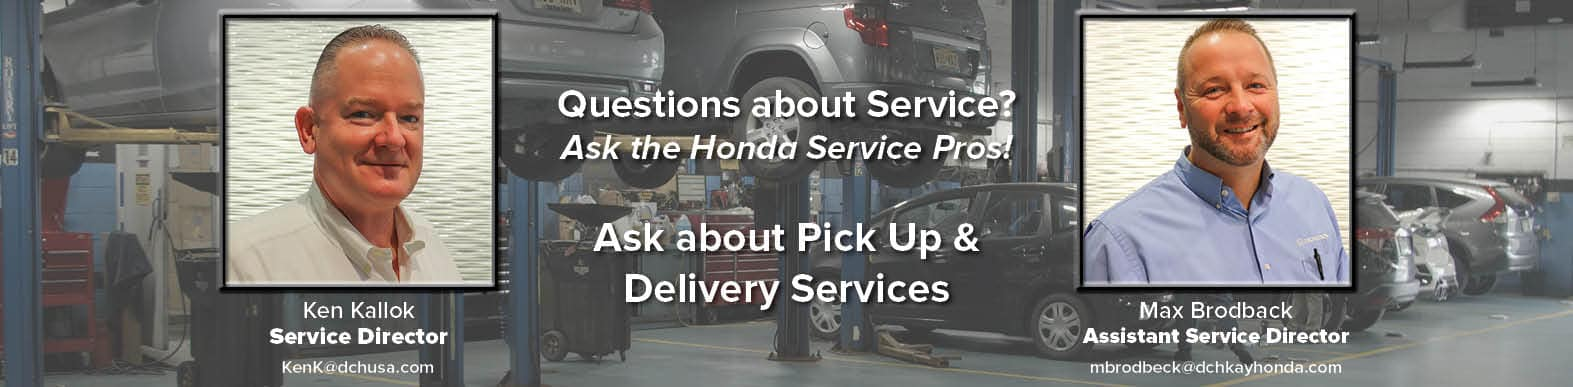 Questions about Service? Ask about Pick Up & Delivery Services